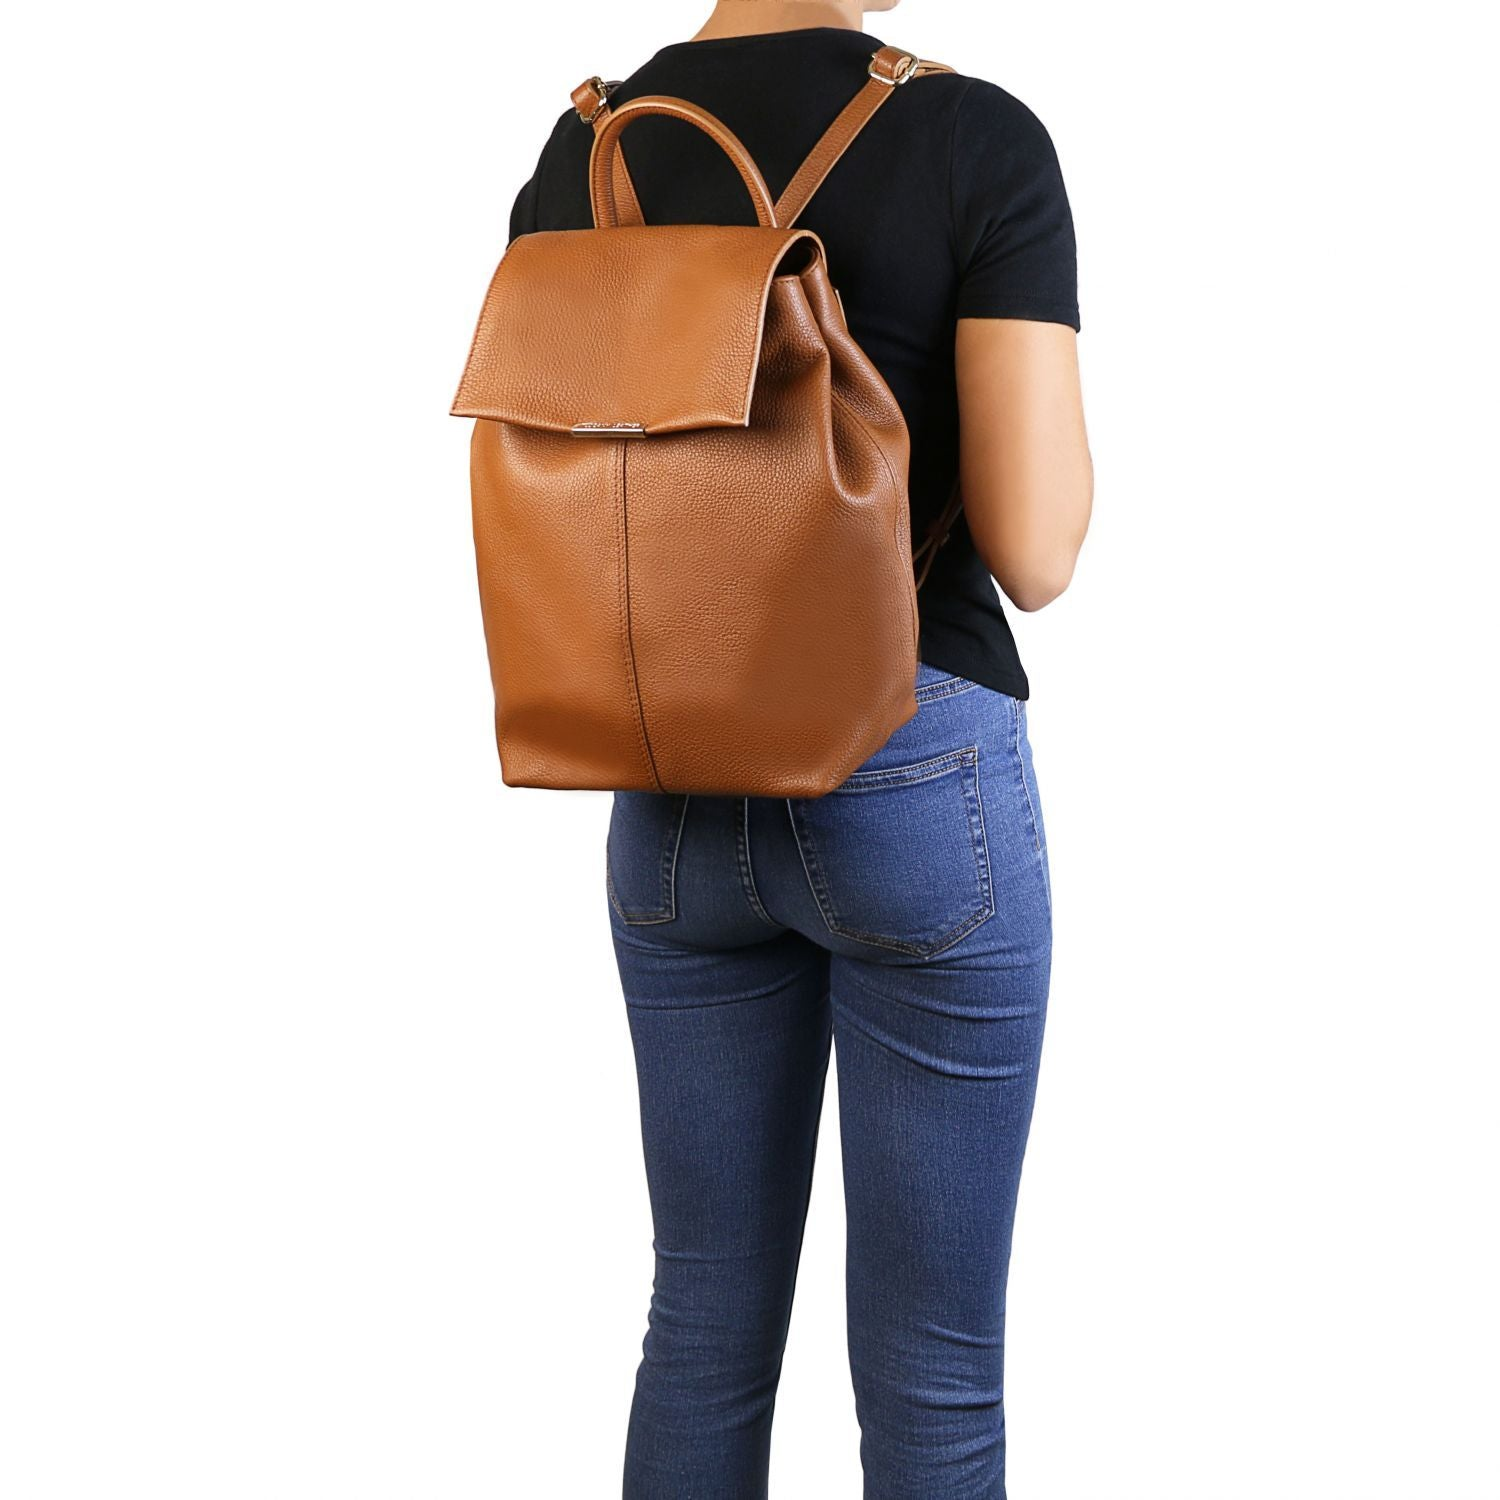 TL Bag - Soft leather backpack for women (TL141706) - Leather backpacks for women | DILUSSOBAGS